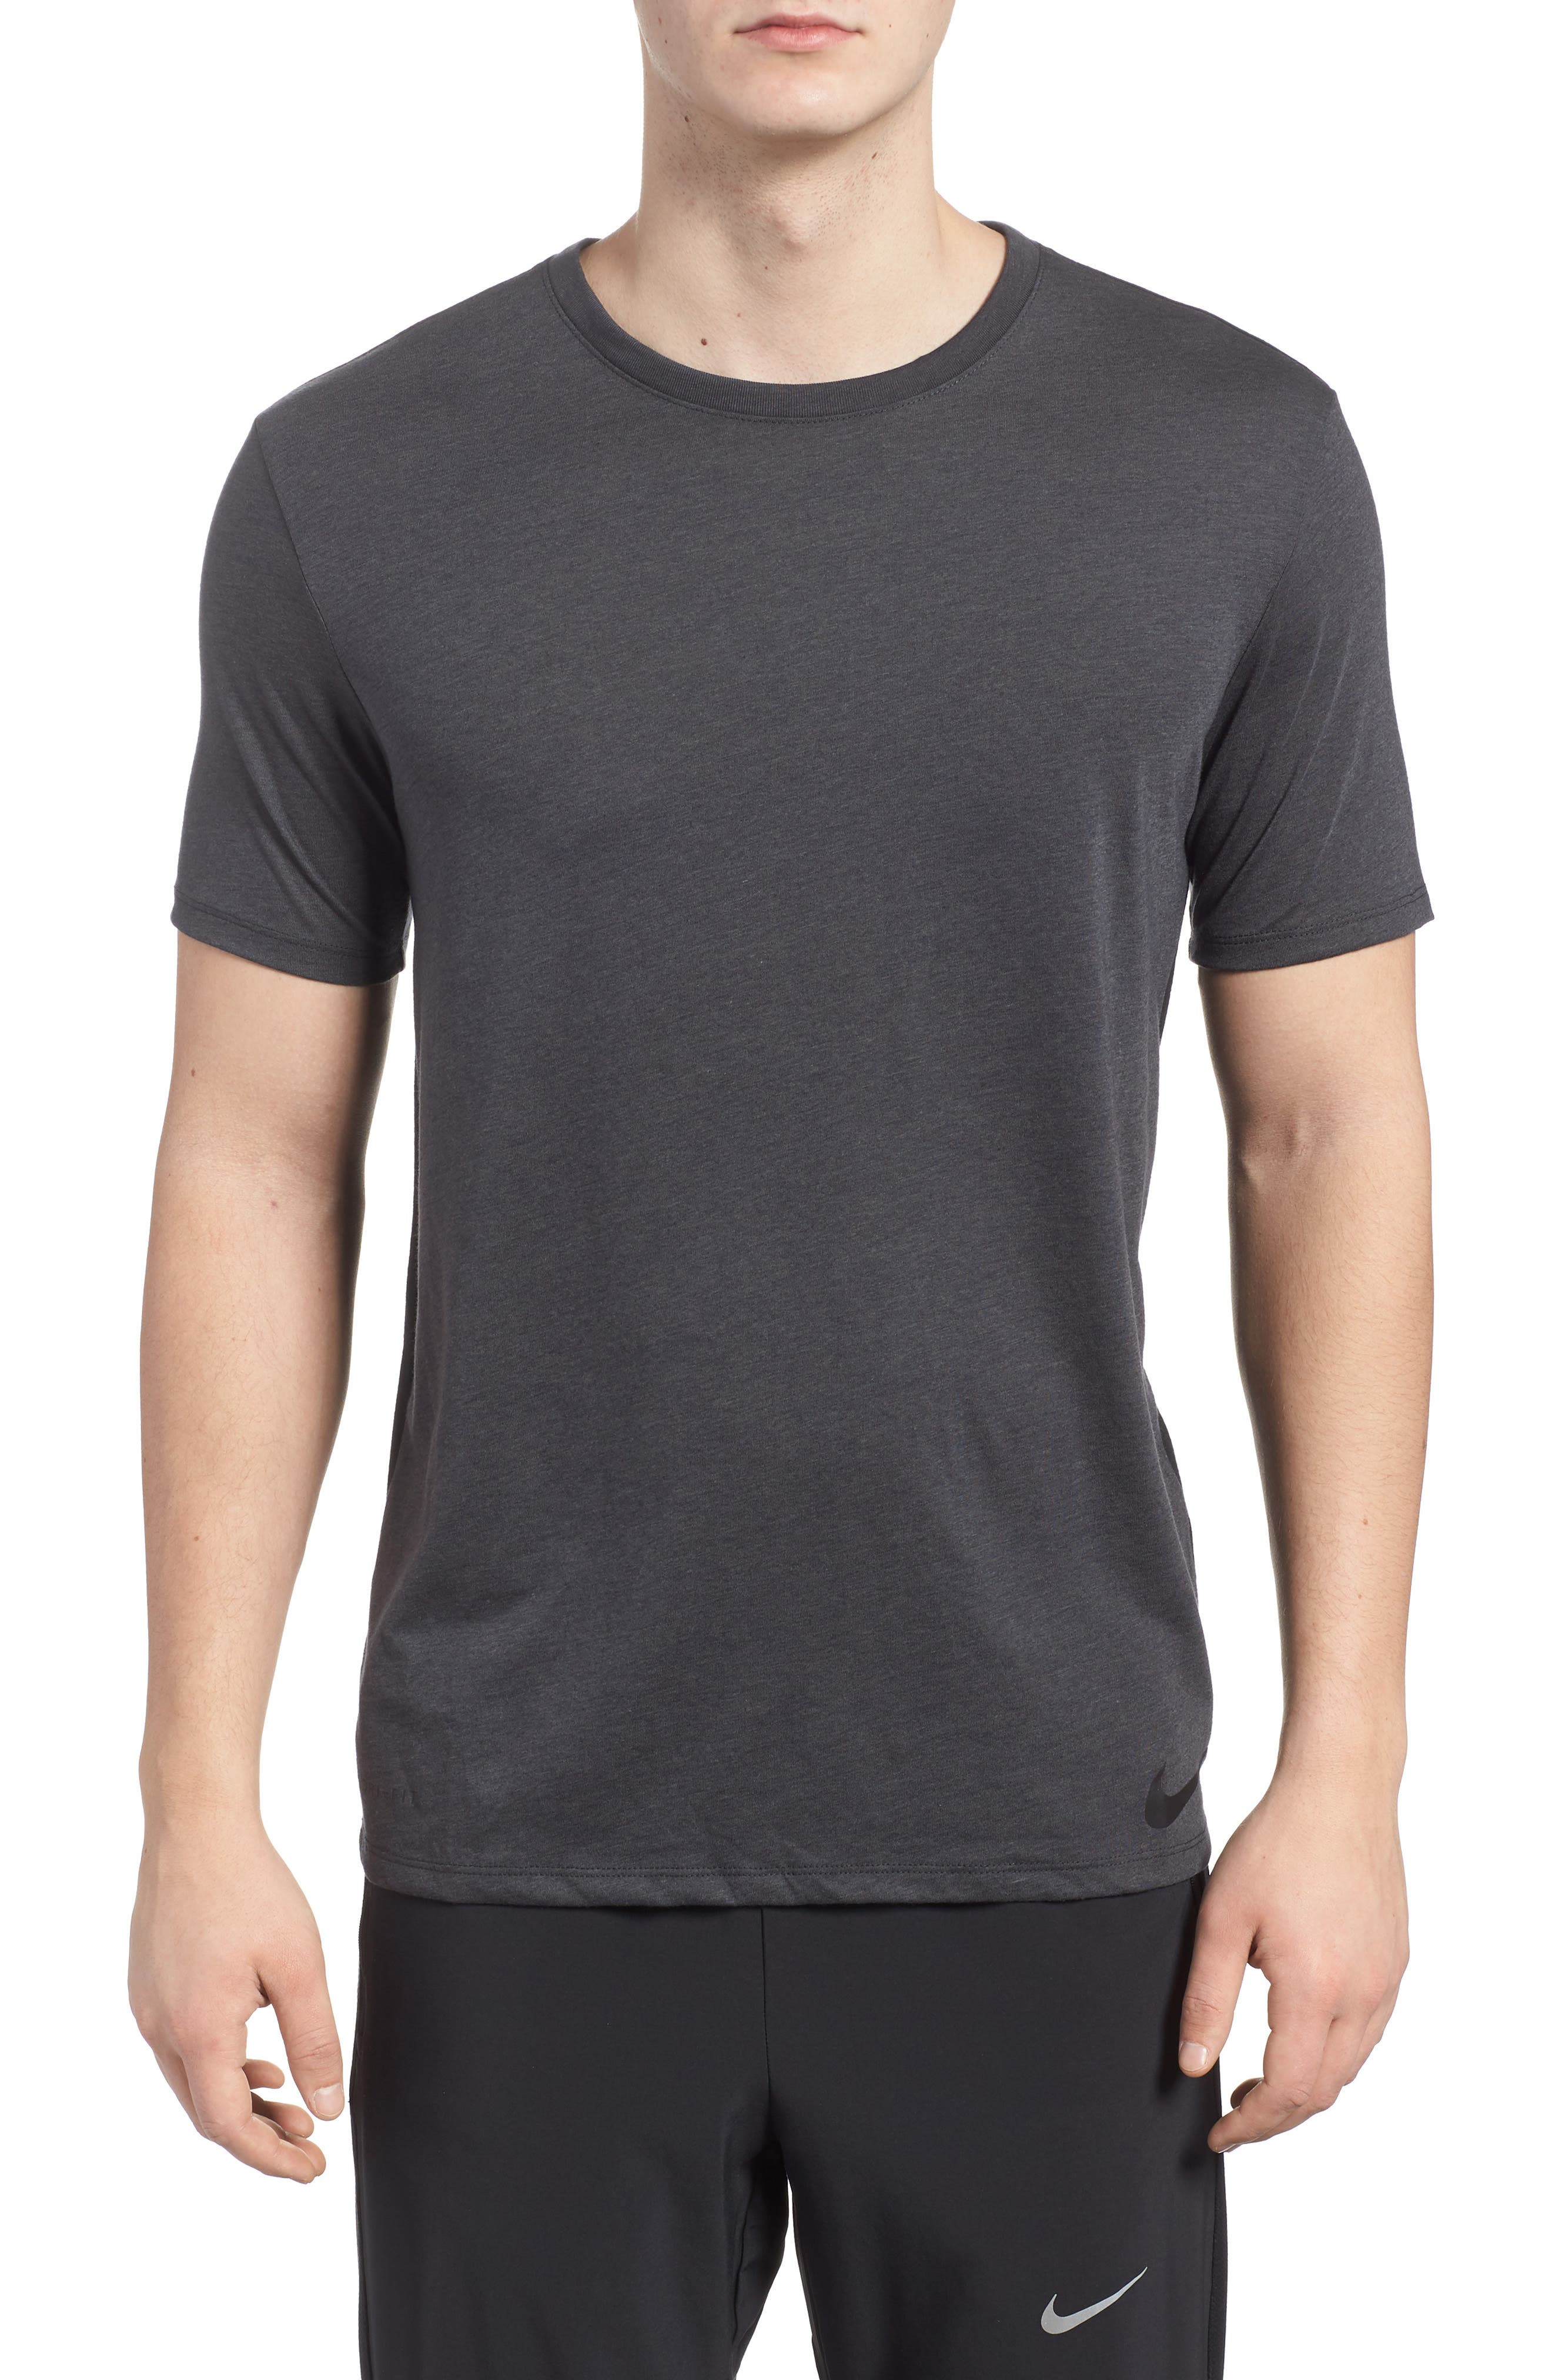 Training Dry Project X T-Shirt,                         Main,                         color, Anthracite/ Black